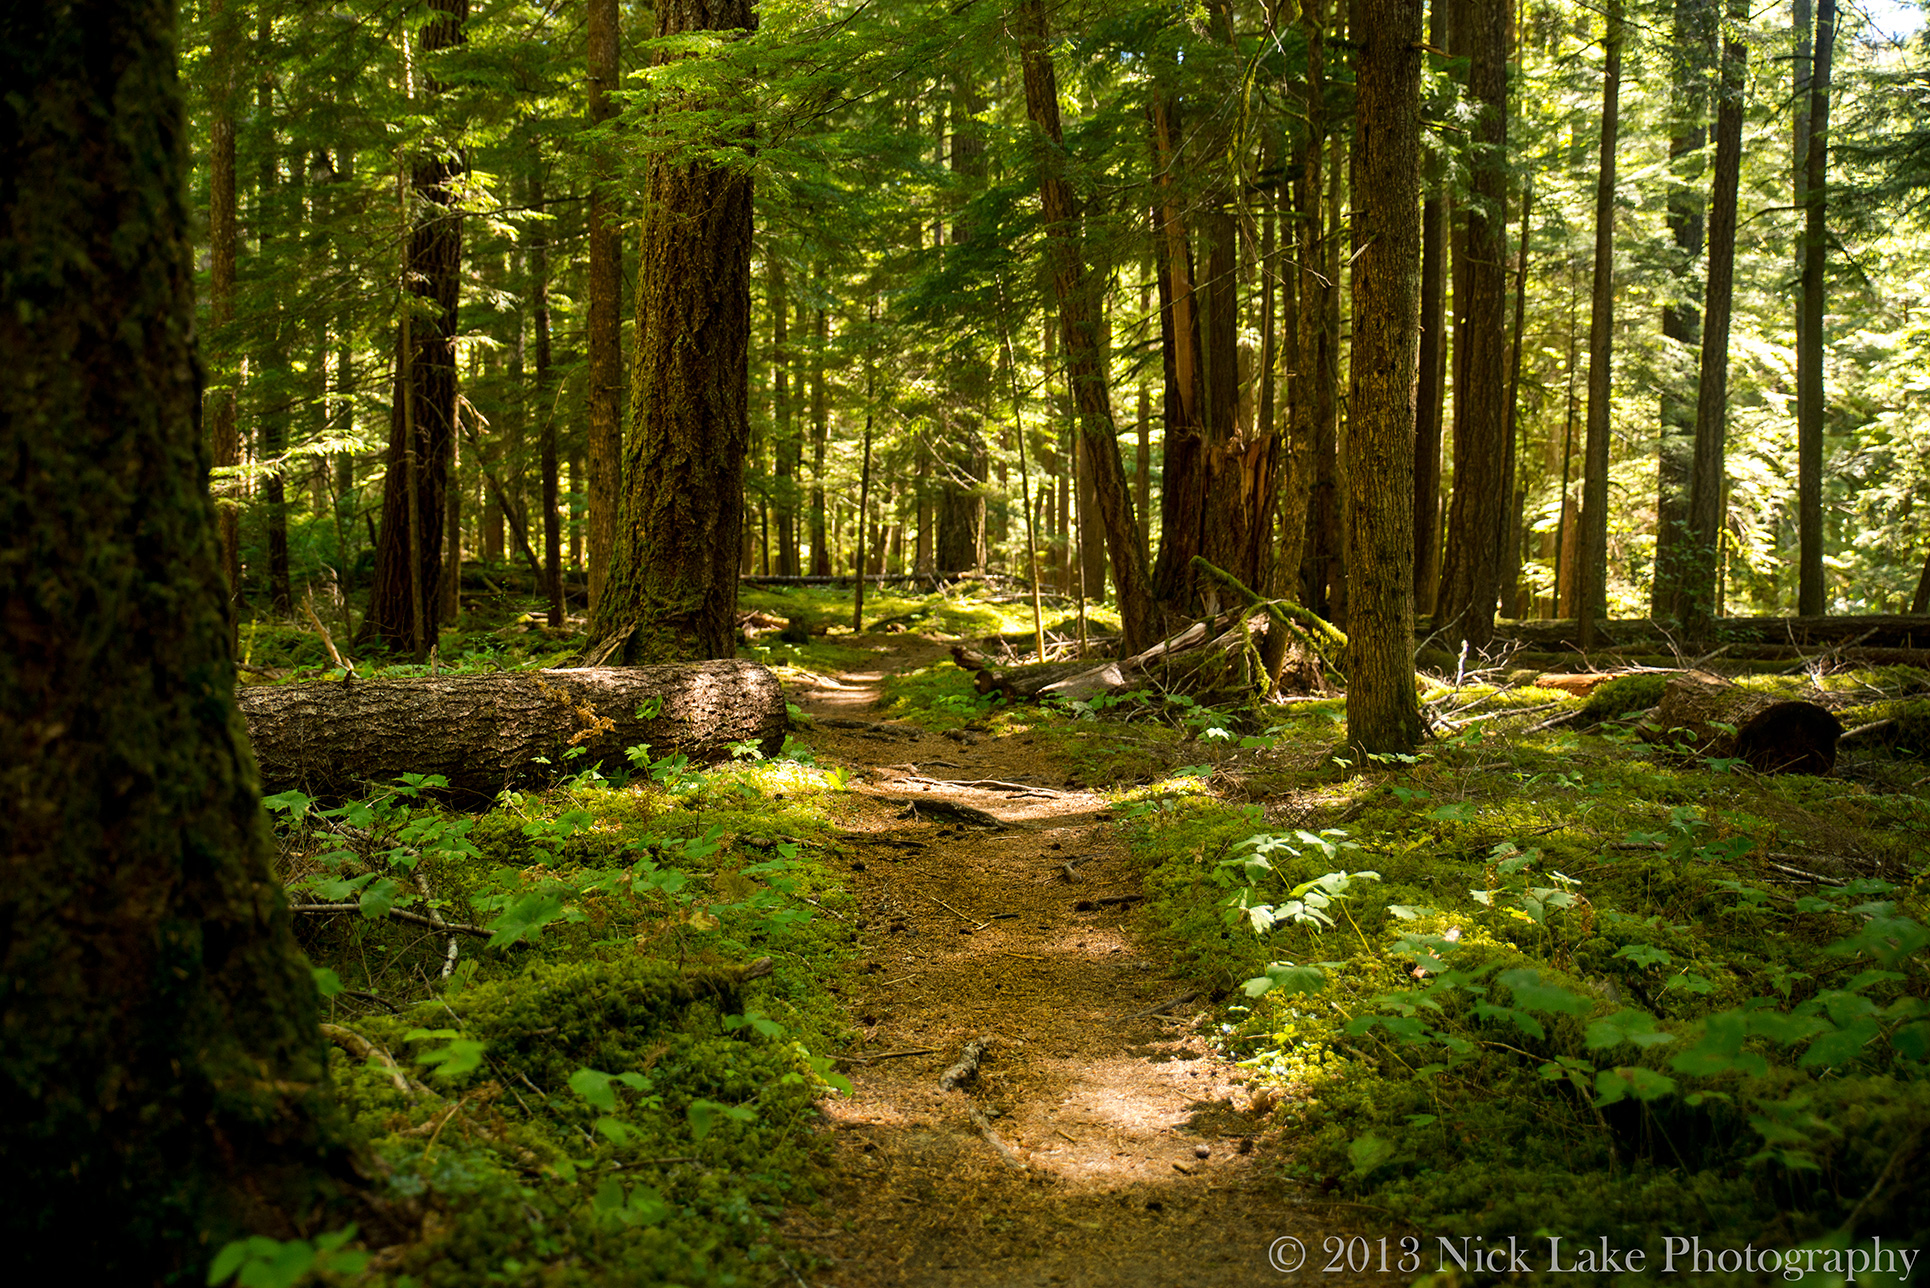 Trail Winds through Green Forest in Olympic National Park